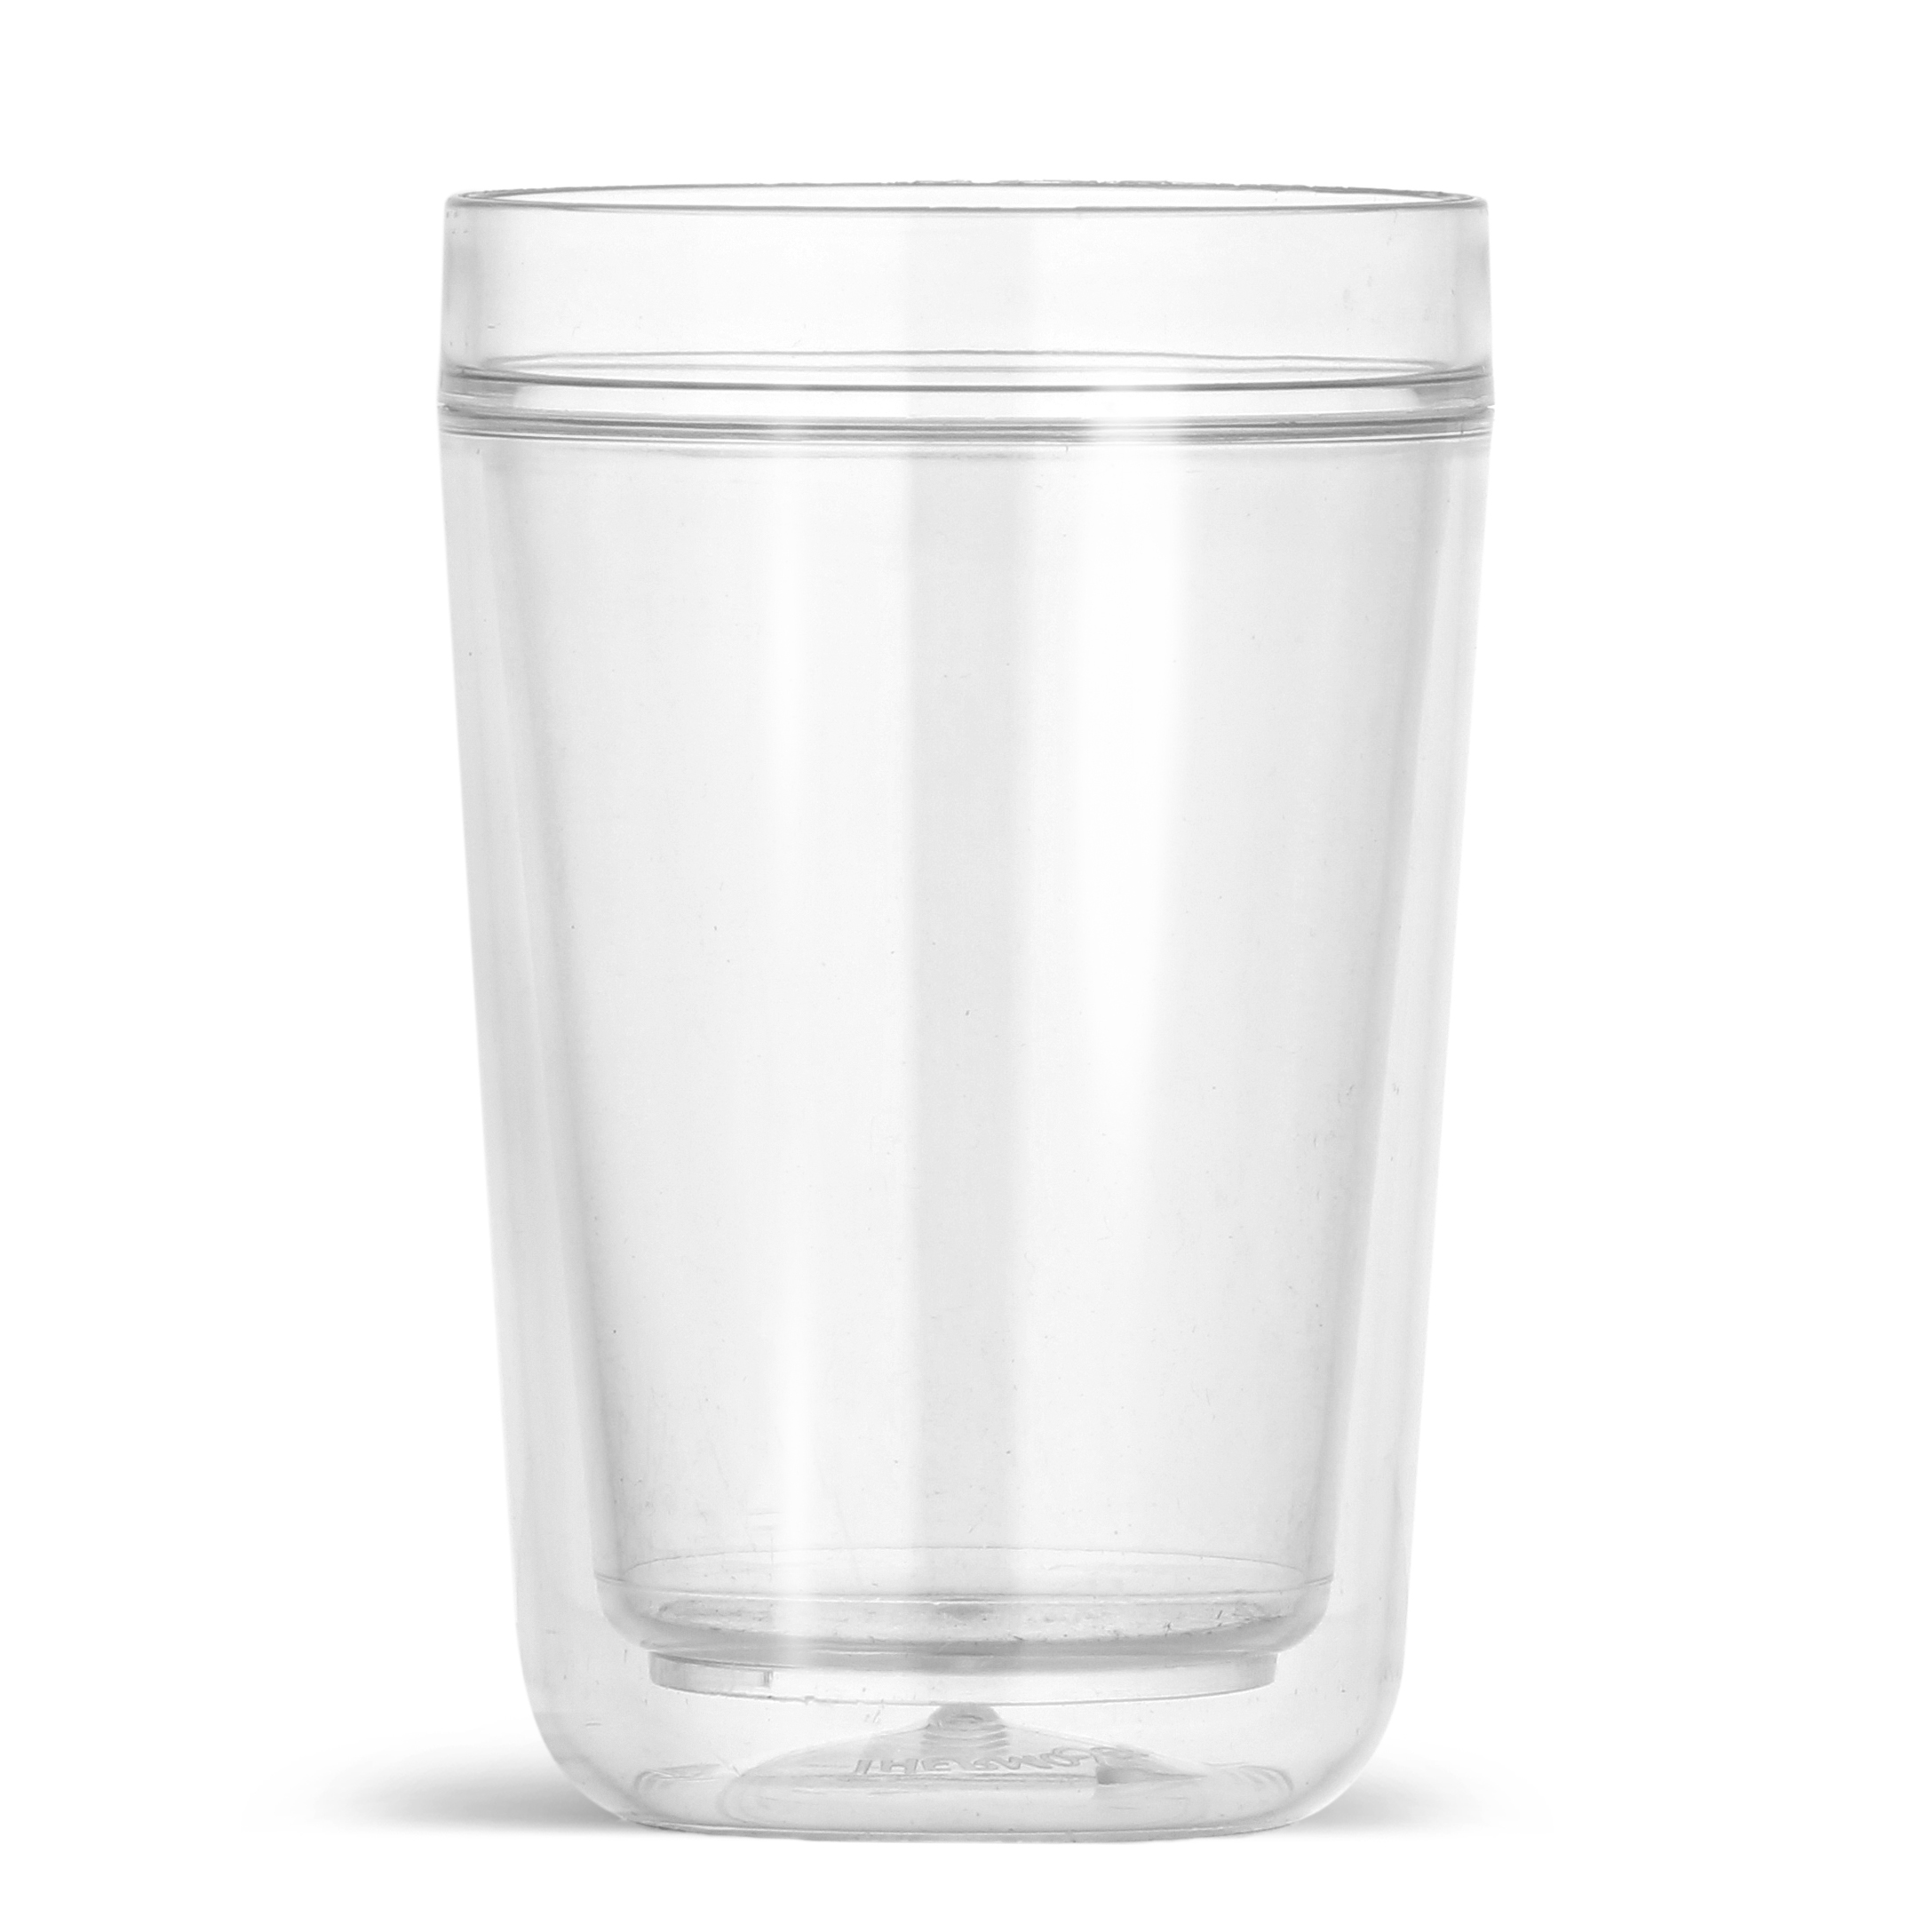 #CM 5666 - 16 Oz. ThermoServ Smooth Tumbler